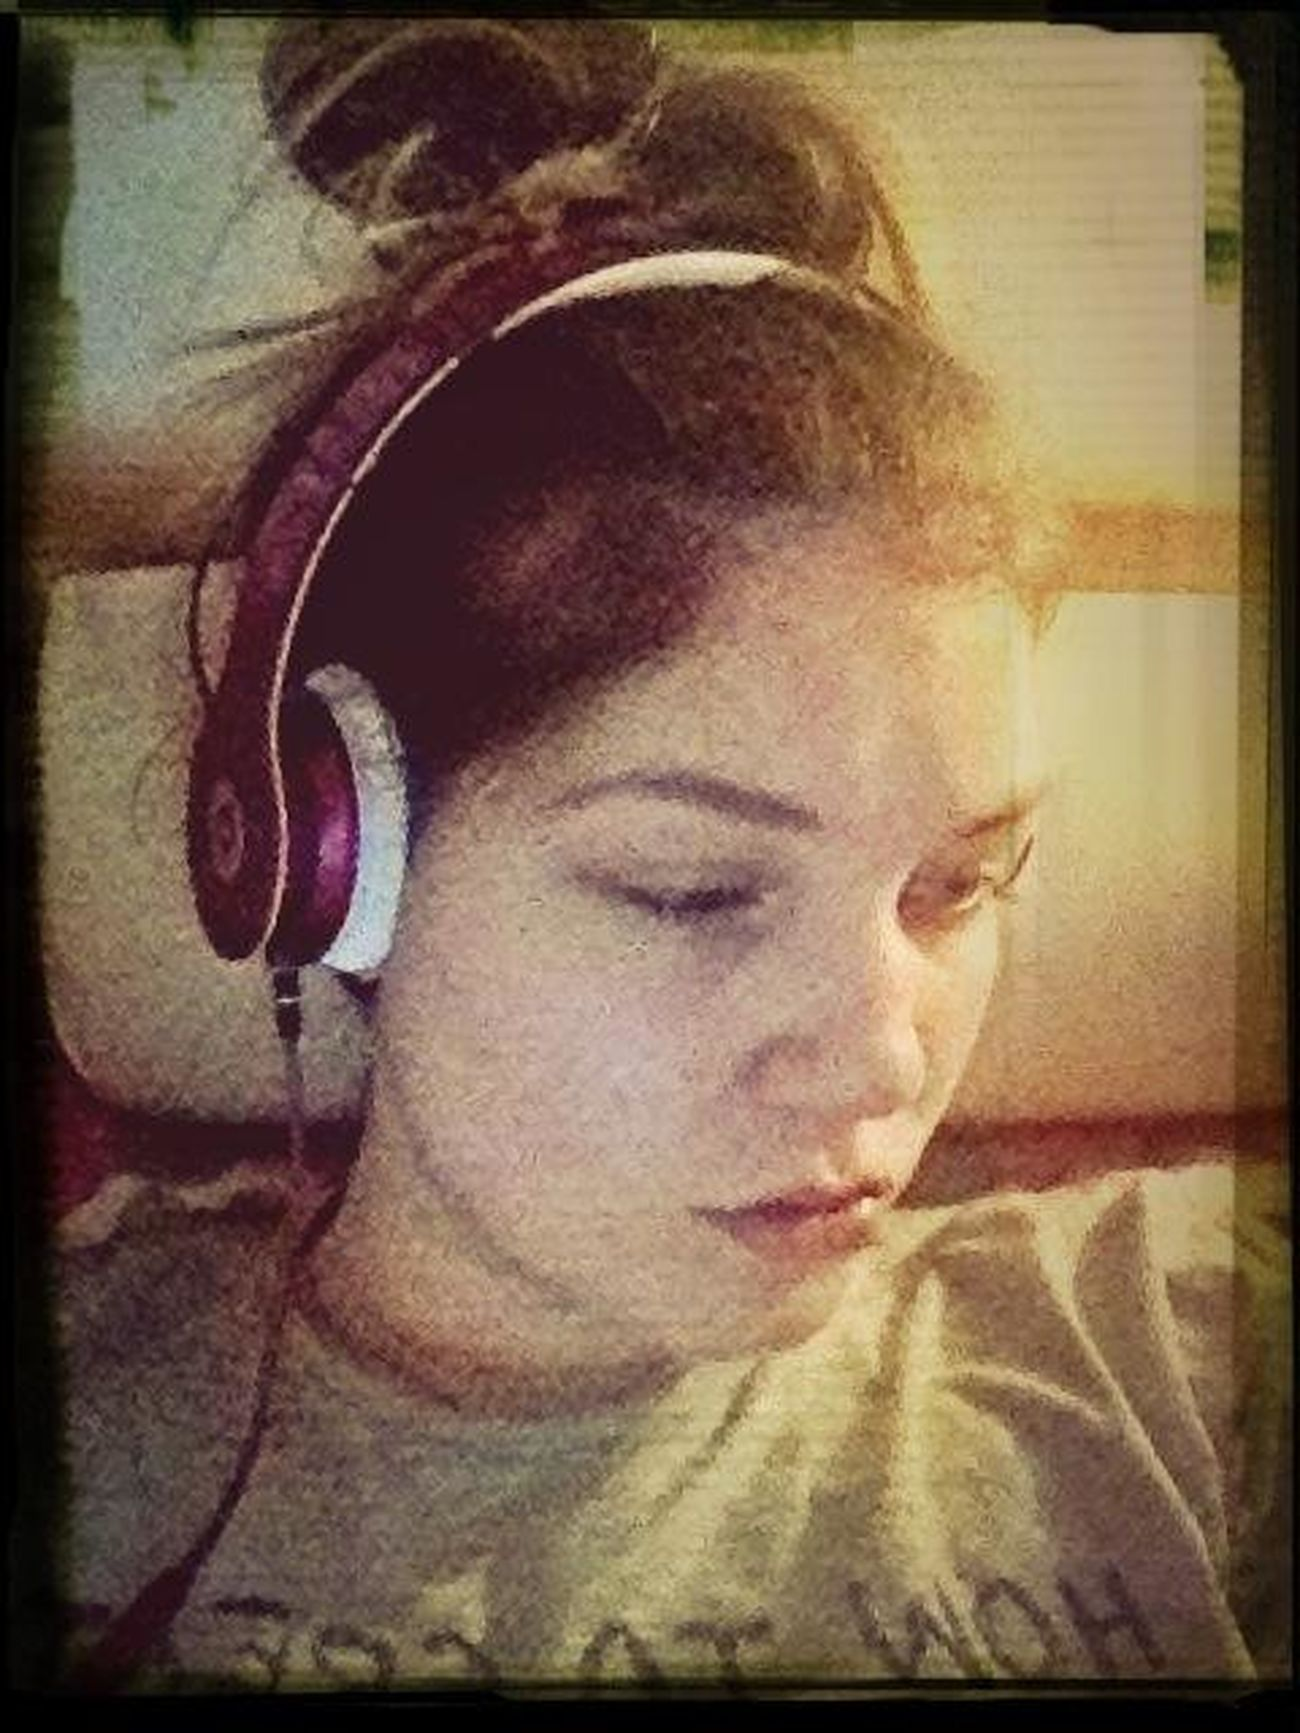 Dre Beats In Bed